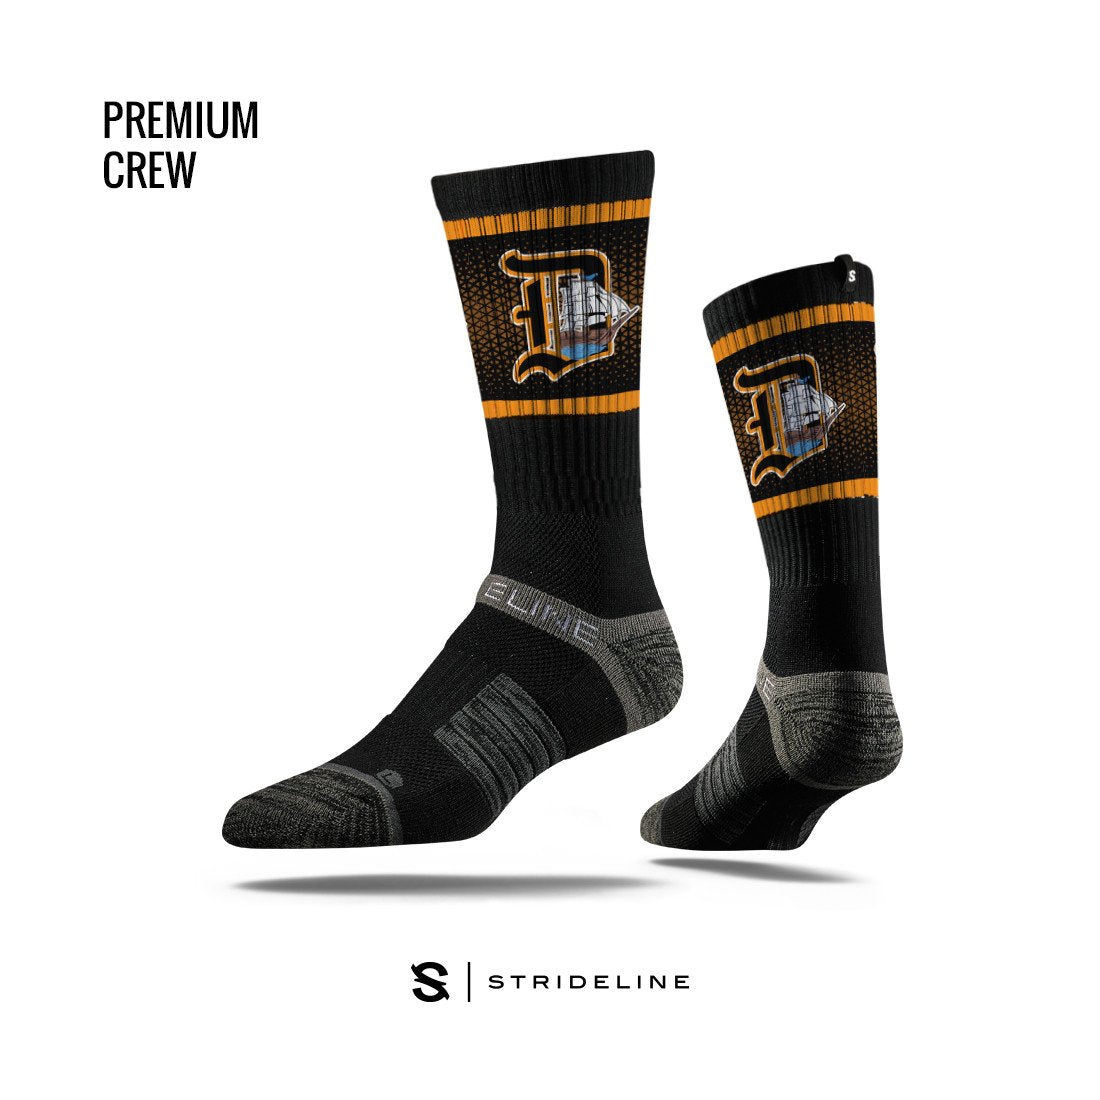 A.C. Davis High School Apparel | Socks | Premium